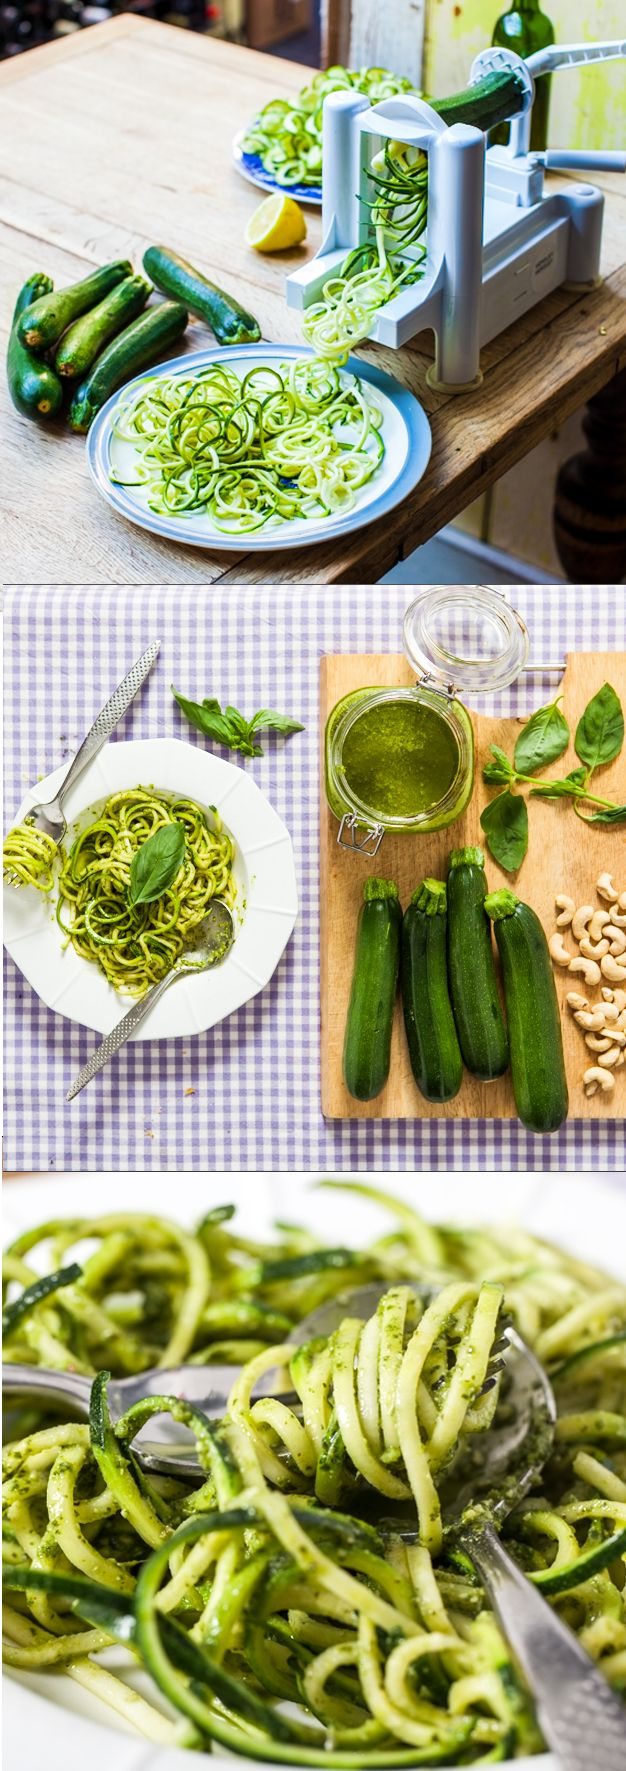 Our much loved COURGETTI (spaghetti made from courgettes) made using the Hemsley Spiralizer.  Make simple, delicious and nutrient-rich meals by adding spiralized vegetables to soups, salads and more.  Click to view our favourite spiralizer recipes.